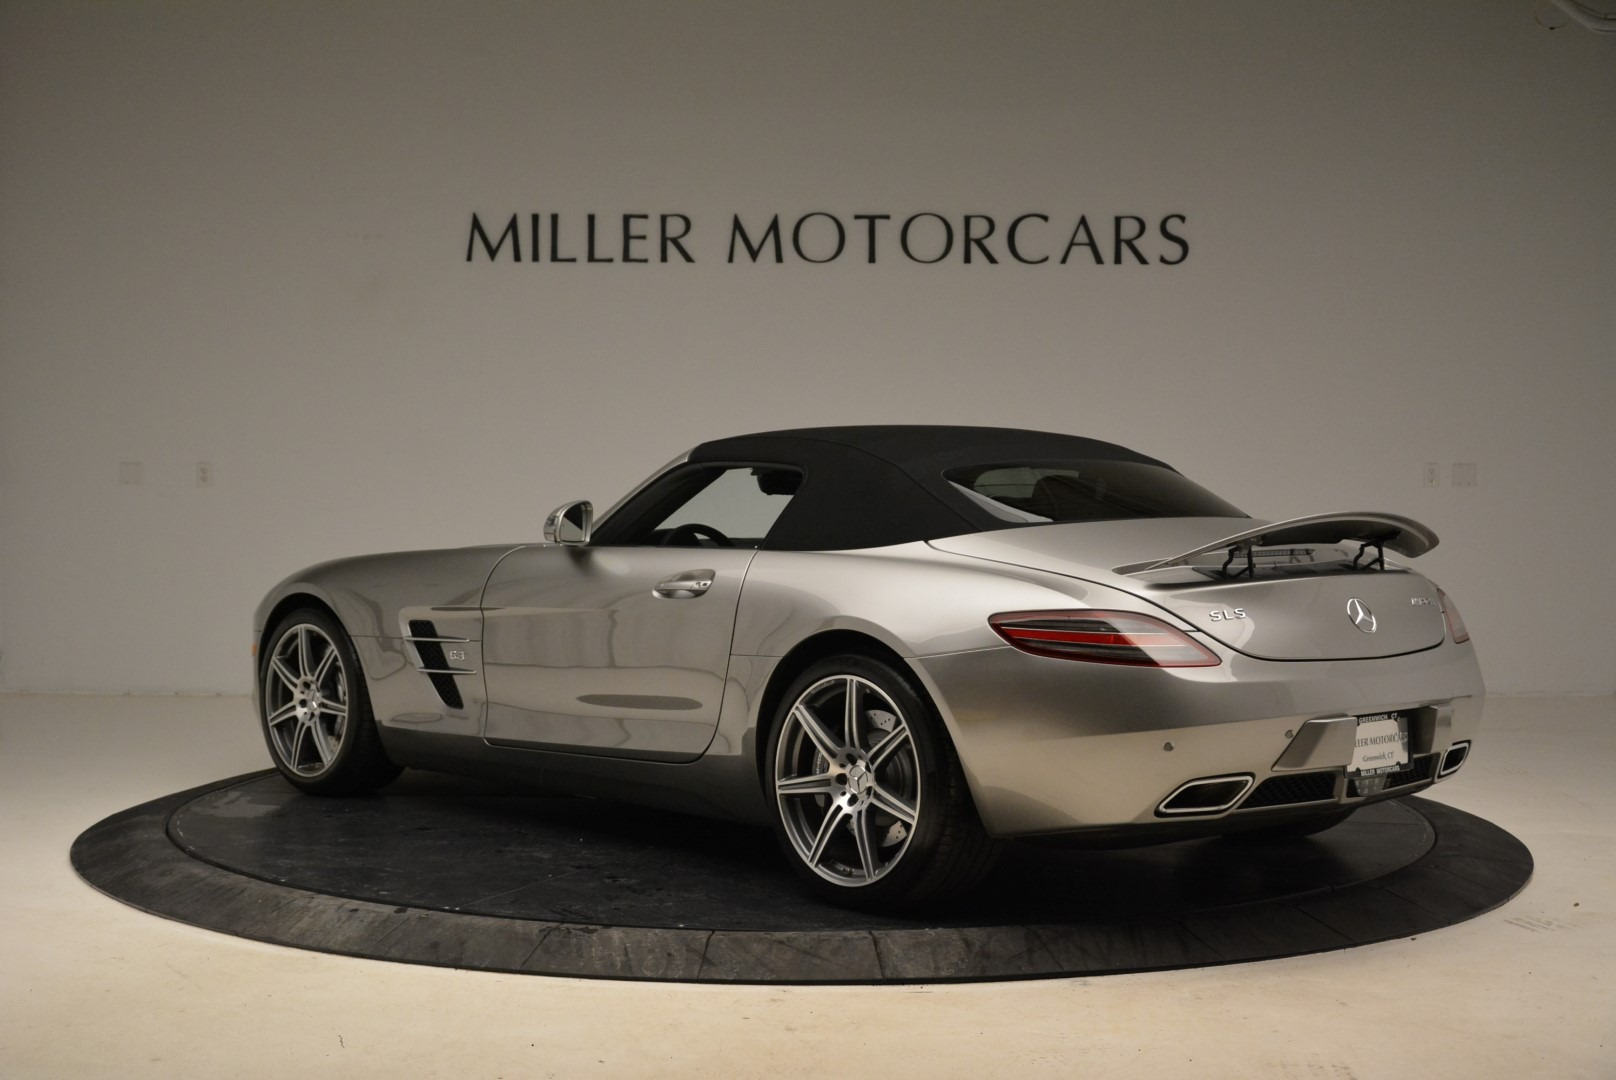 Used 2012 Mercedes-Benz SLS AMG  For Sale In Greenwich, CT. Alfa Romeo of Greenwich, 7330 2068_p15